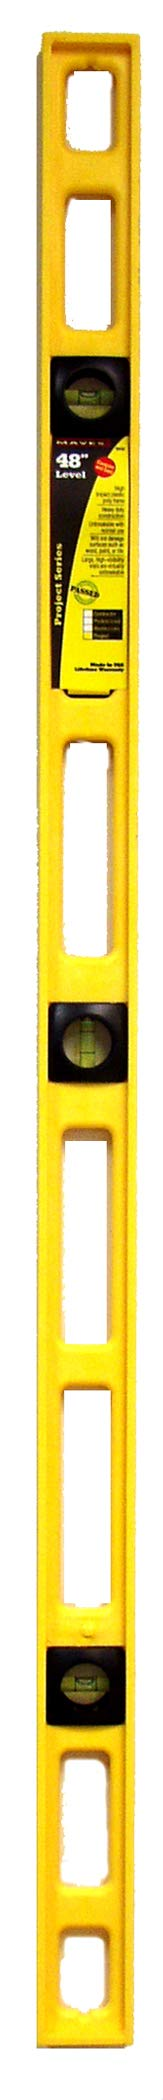 Mayes 10102 48-Inch Polystyrene Level